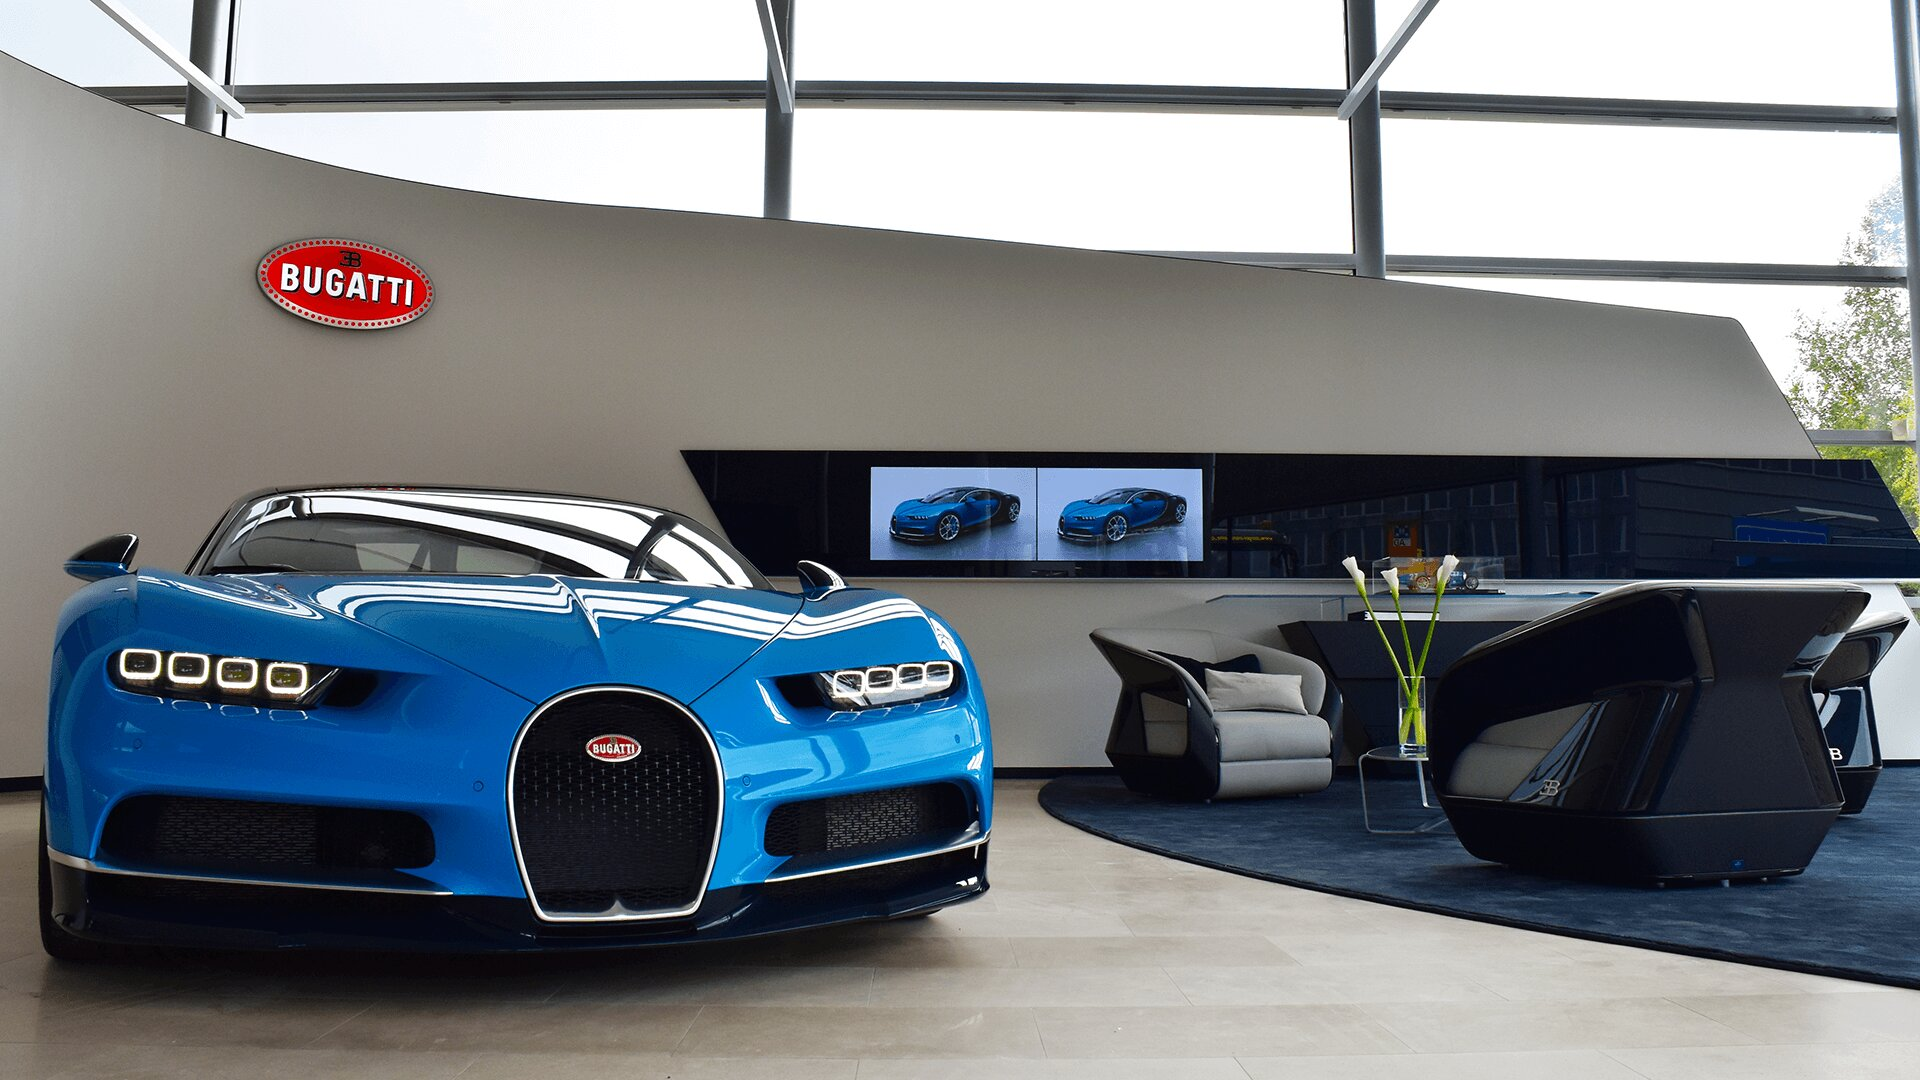 Bugatti showroom Zuerich